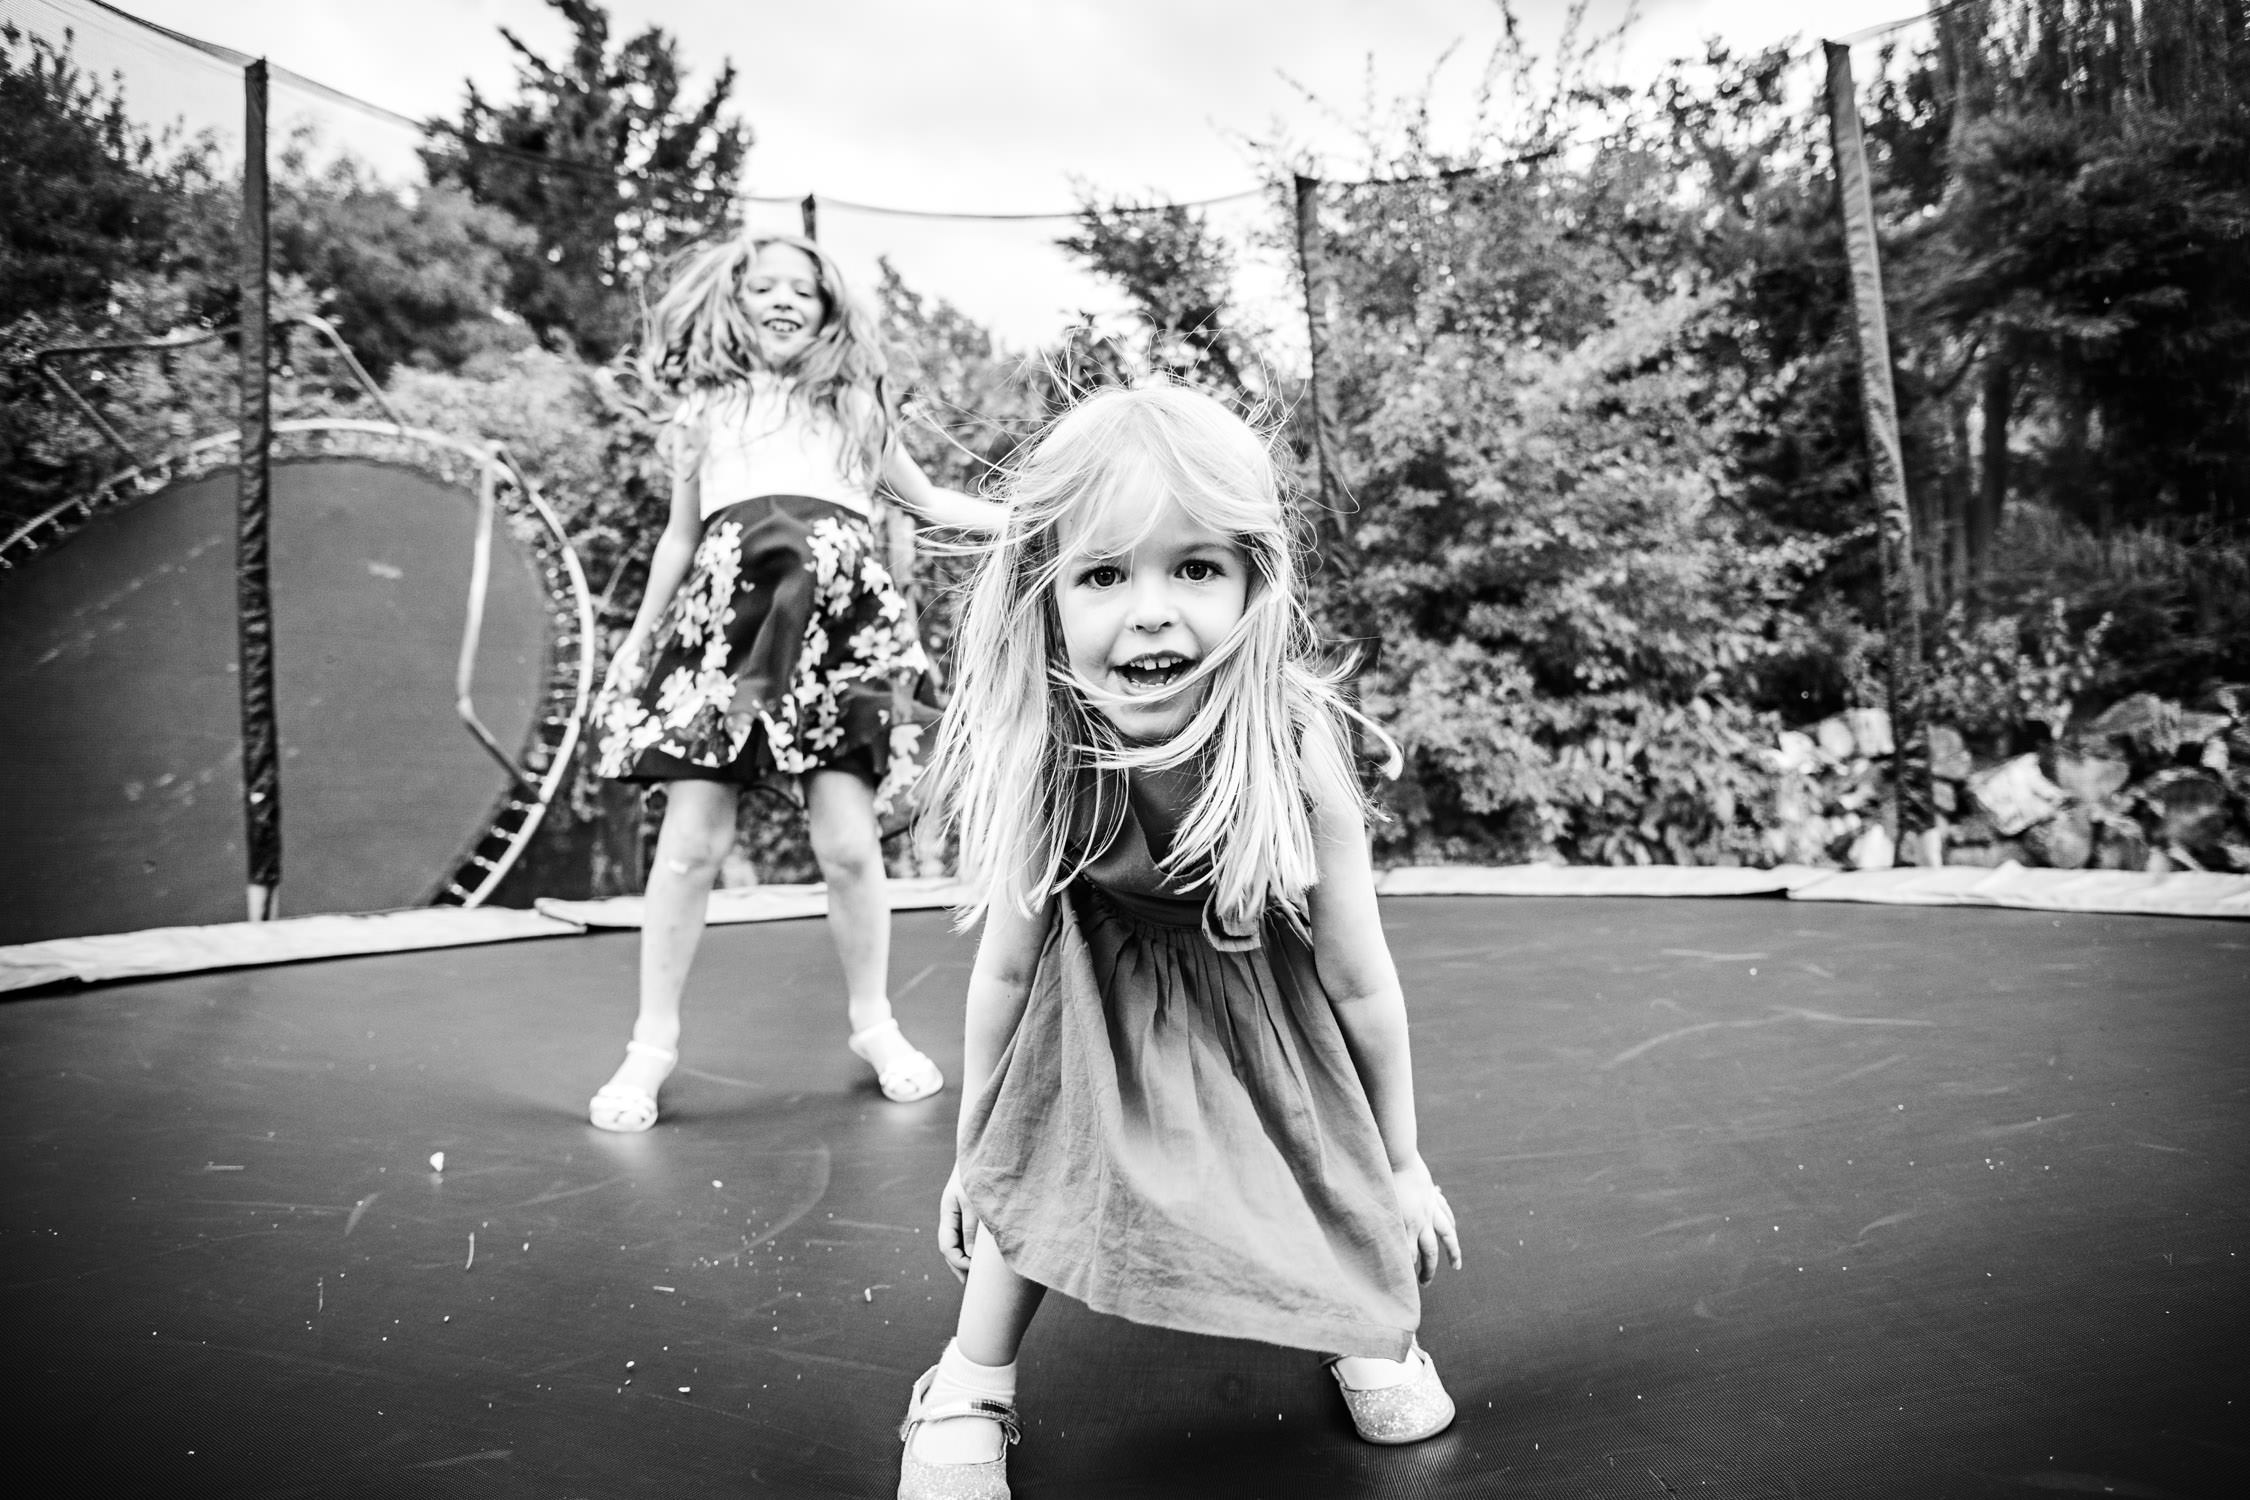 Girls on trampoline